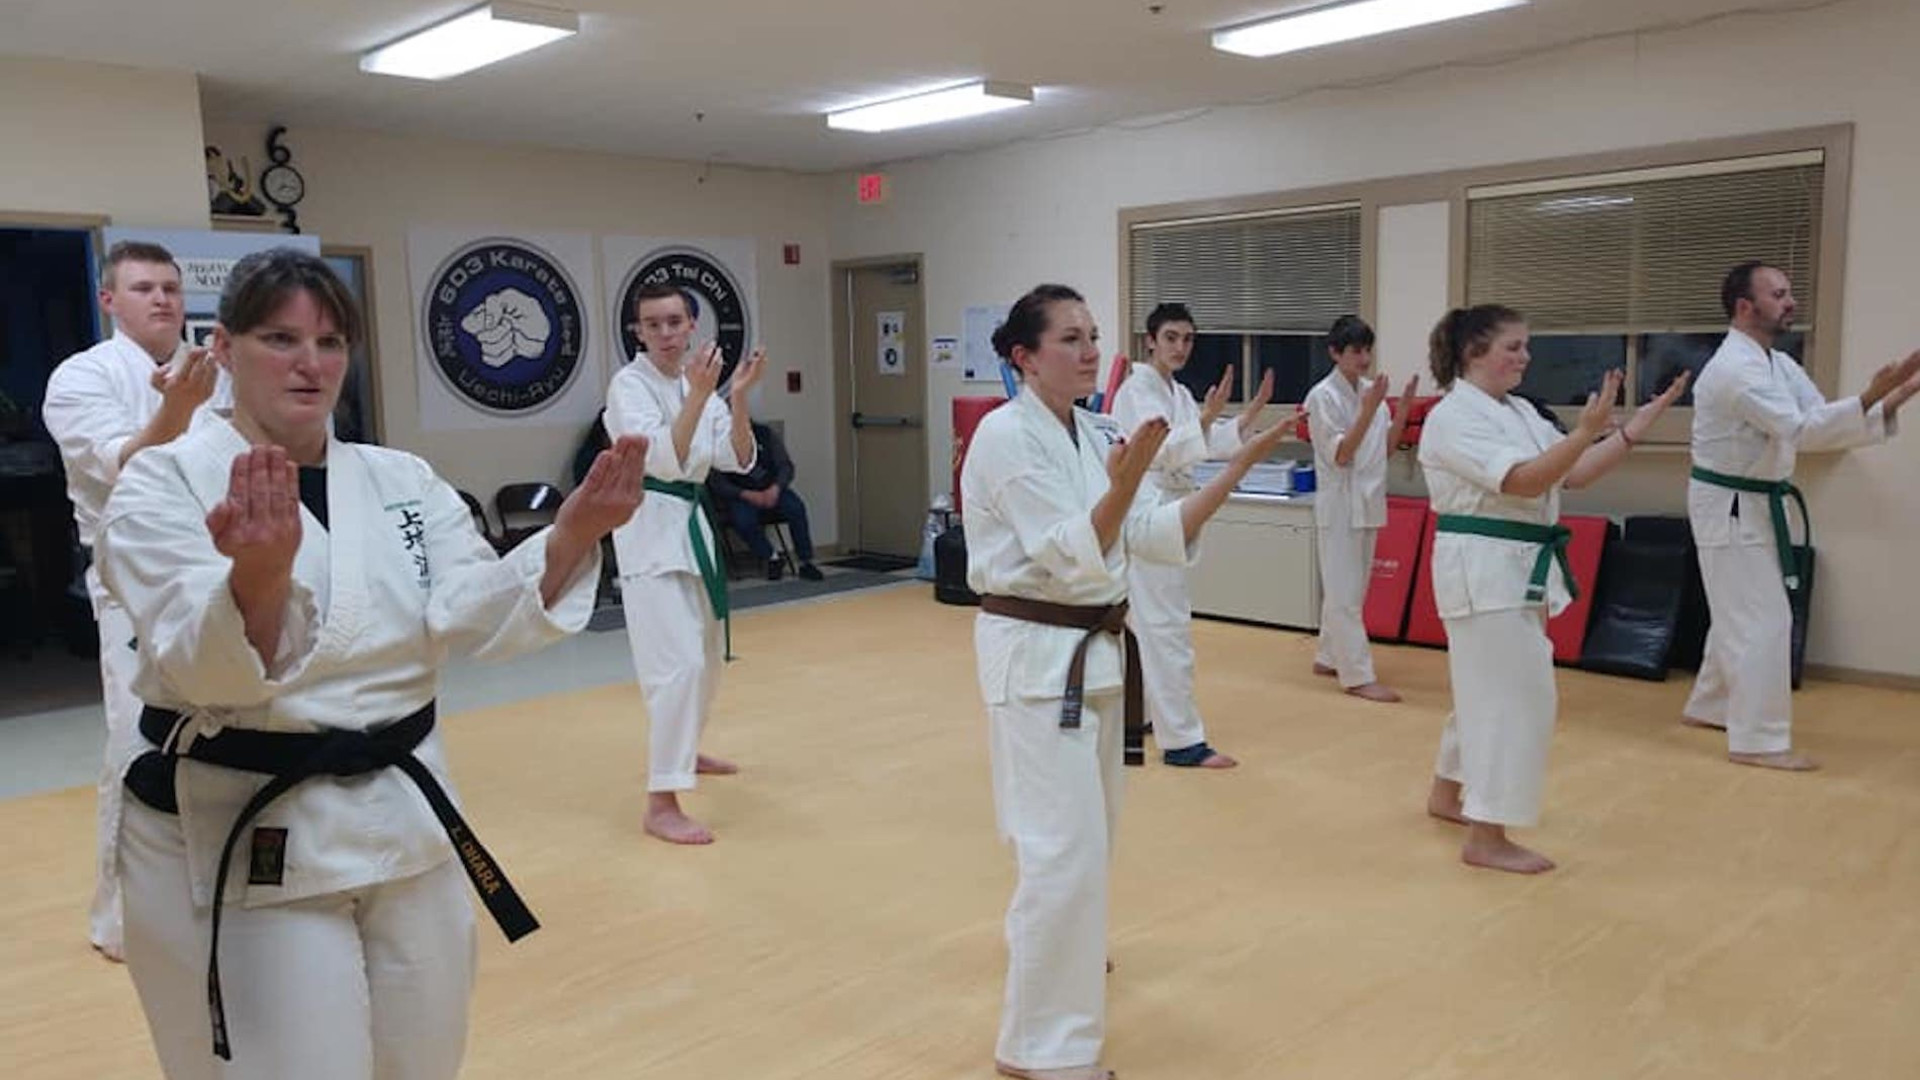 Our Traditional Uechi Ryu Karate Classes Offer Fitness, Self-Defense, and High-Energy Fun!